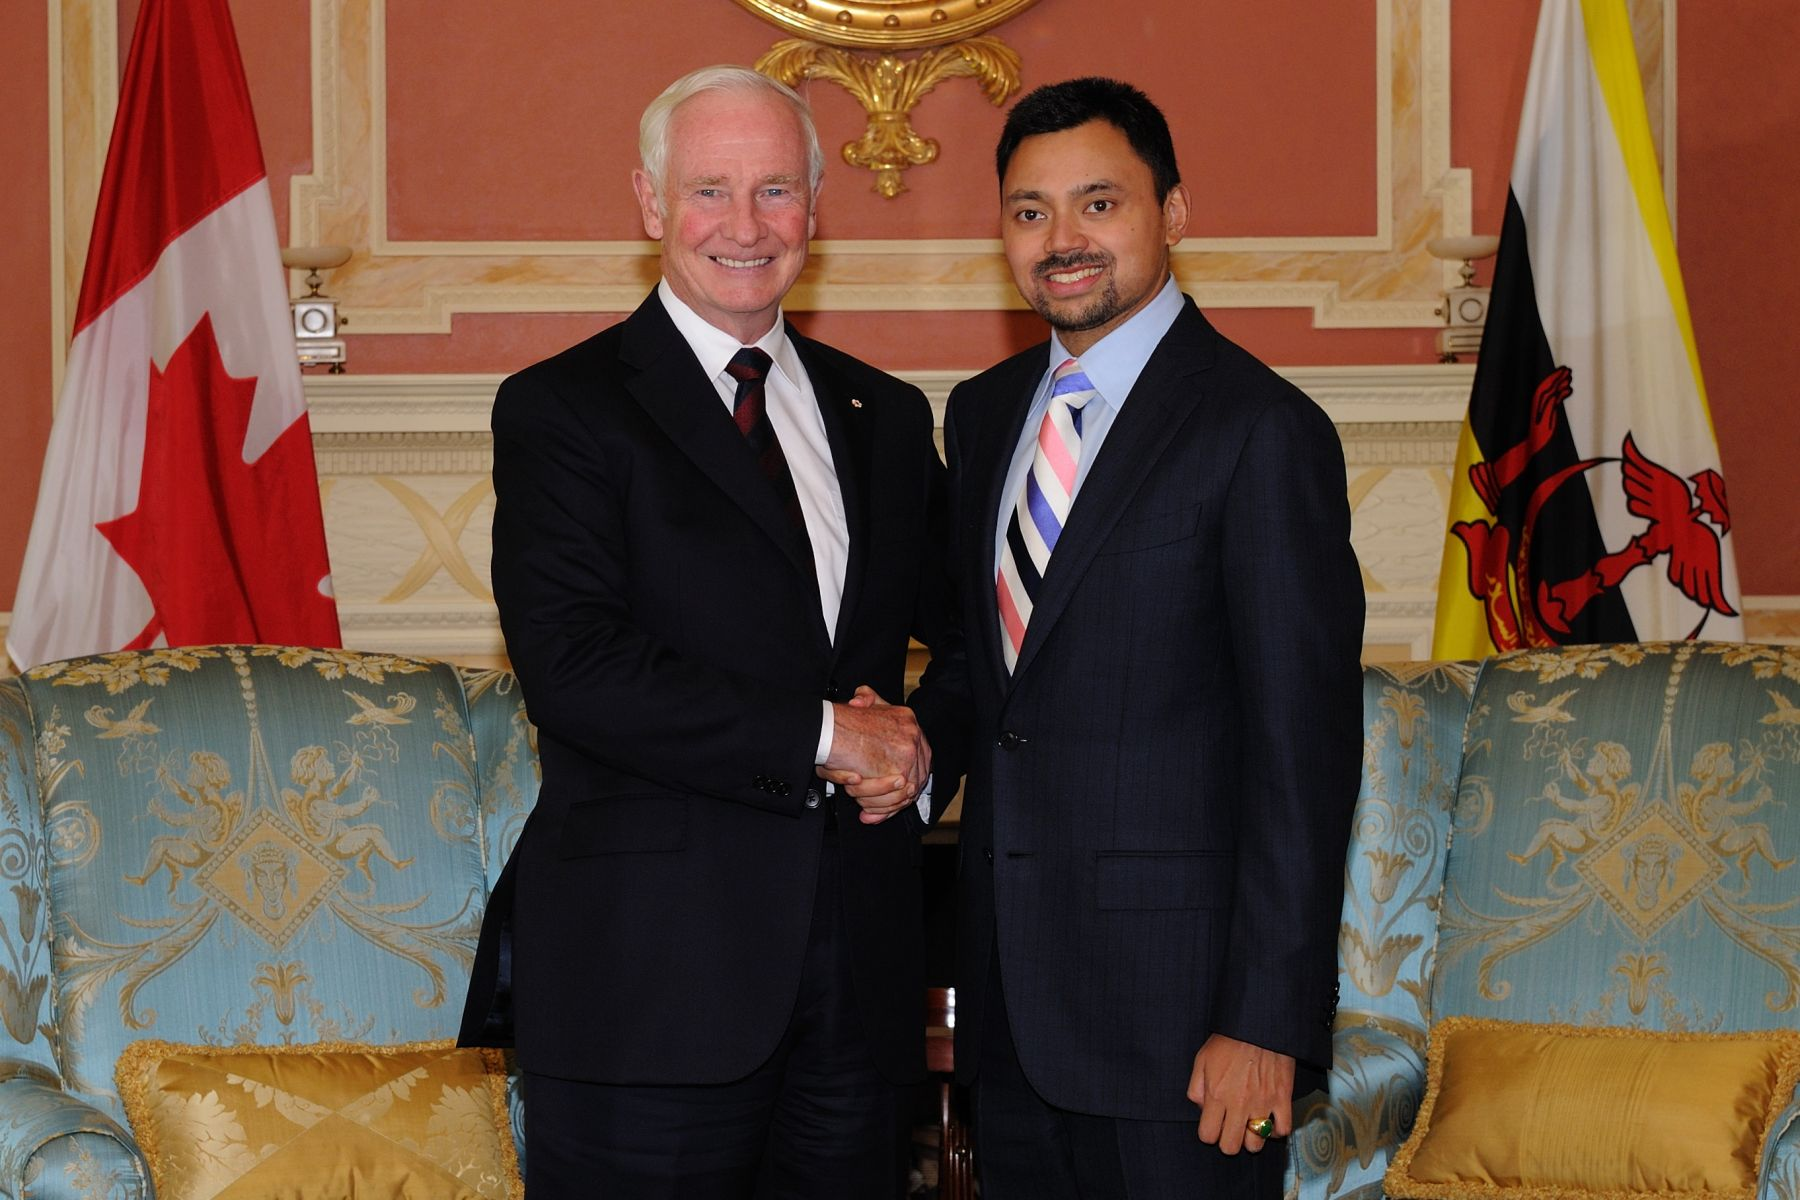 Son Excellence le très honorable David Johnston, gouverneur général du Canada, a accueilli Son Altesse Royale le prince Haji Al-Muhtadee Billah, prince hériter de Brunei Darussalam et ministre principal pour le Bureau du premier ministre du pays, le 16 septembre 2011.